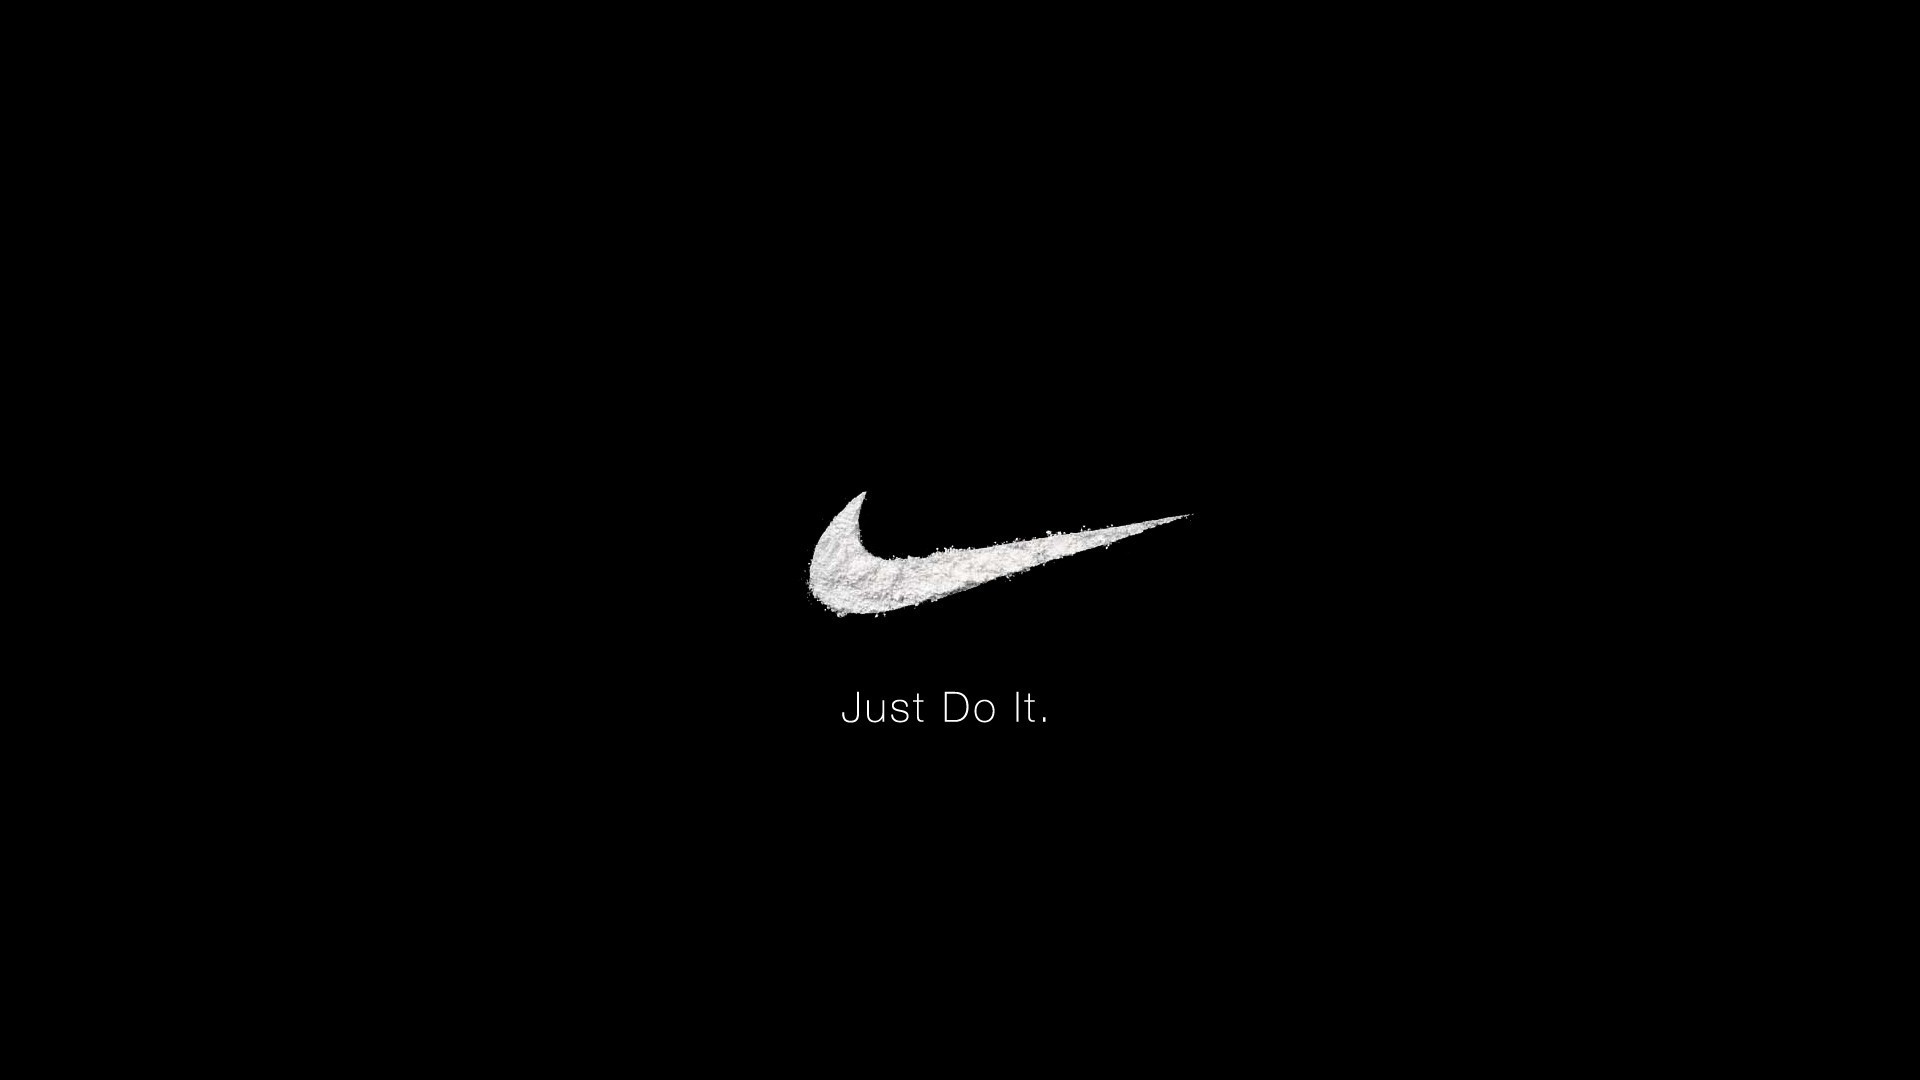 Nike Just Do It wallpaper | 1920x1080 | #71347